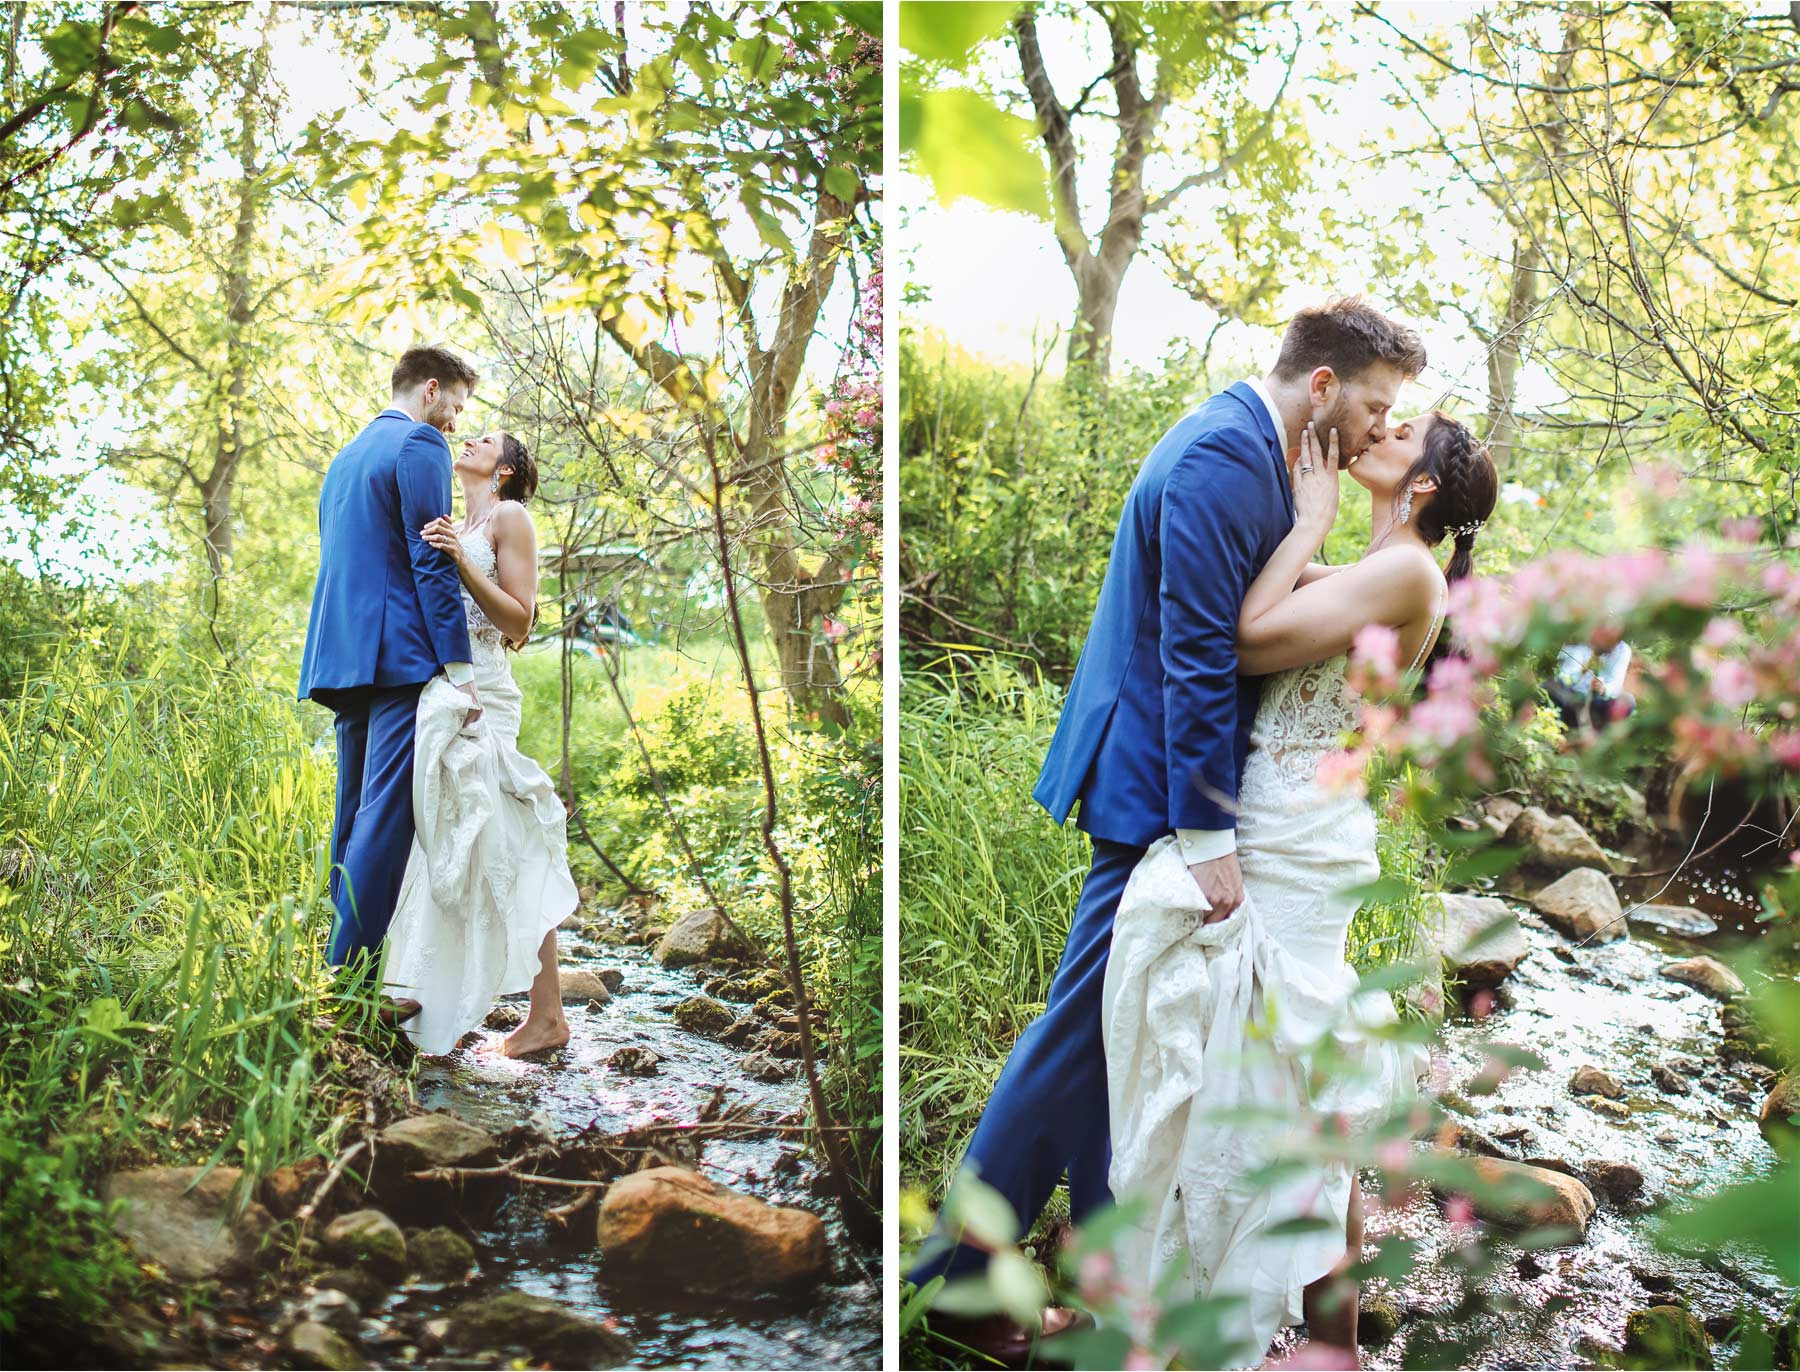 20-Minneapolis-Minnesota-Wedding-Andrew-Vick-Photography-Bavaria-Downs-Bride-Groom-Summer-Creek-Barefoot-Paige-and-Blake.jpg